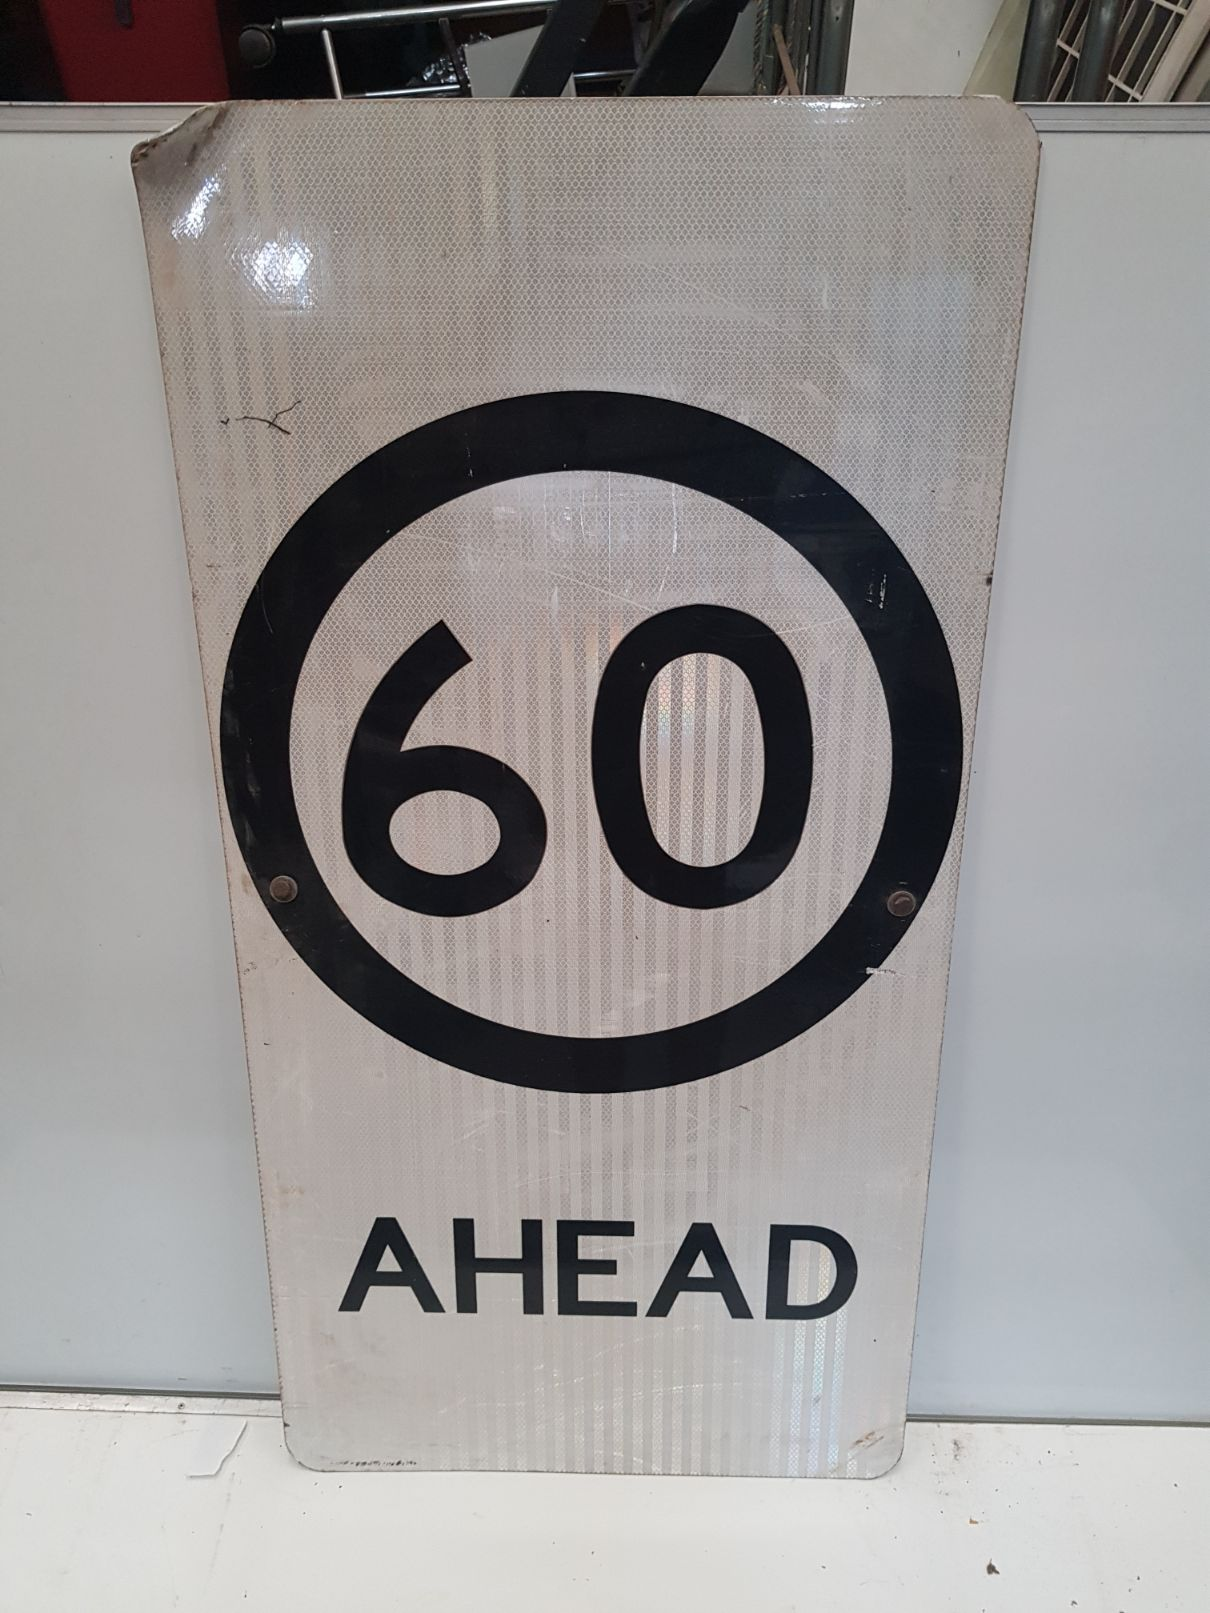 60 Speed Limit Ahead Sign.jpg